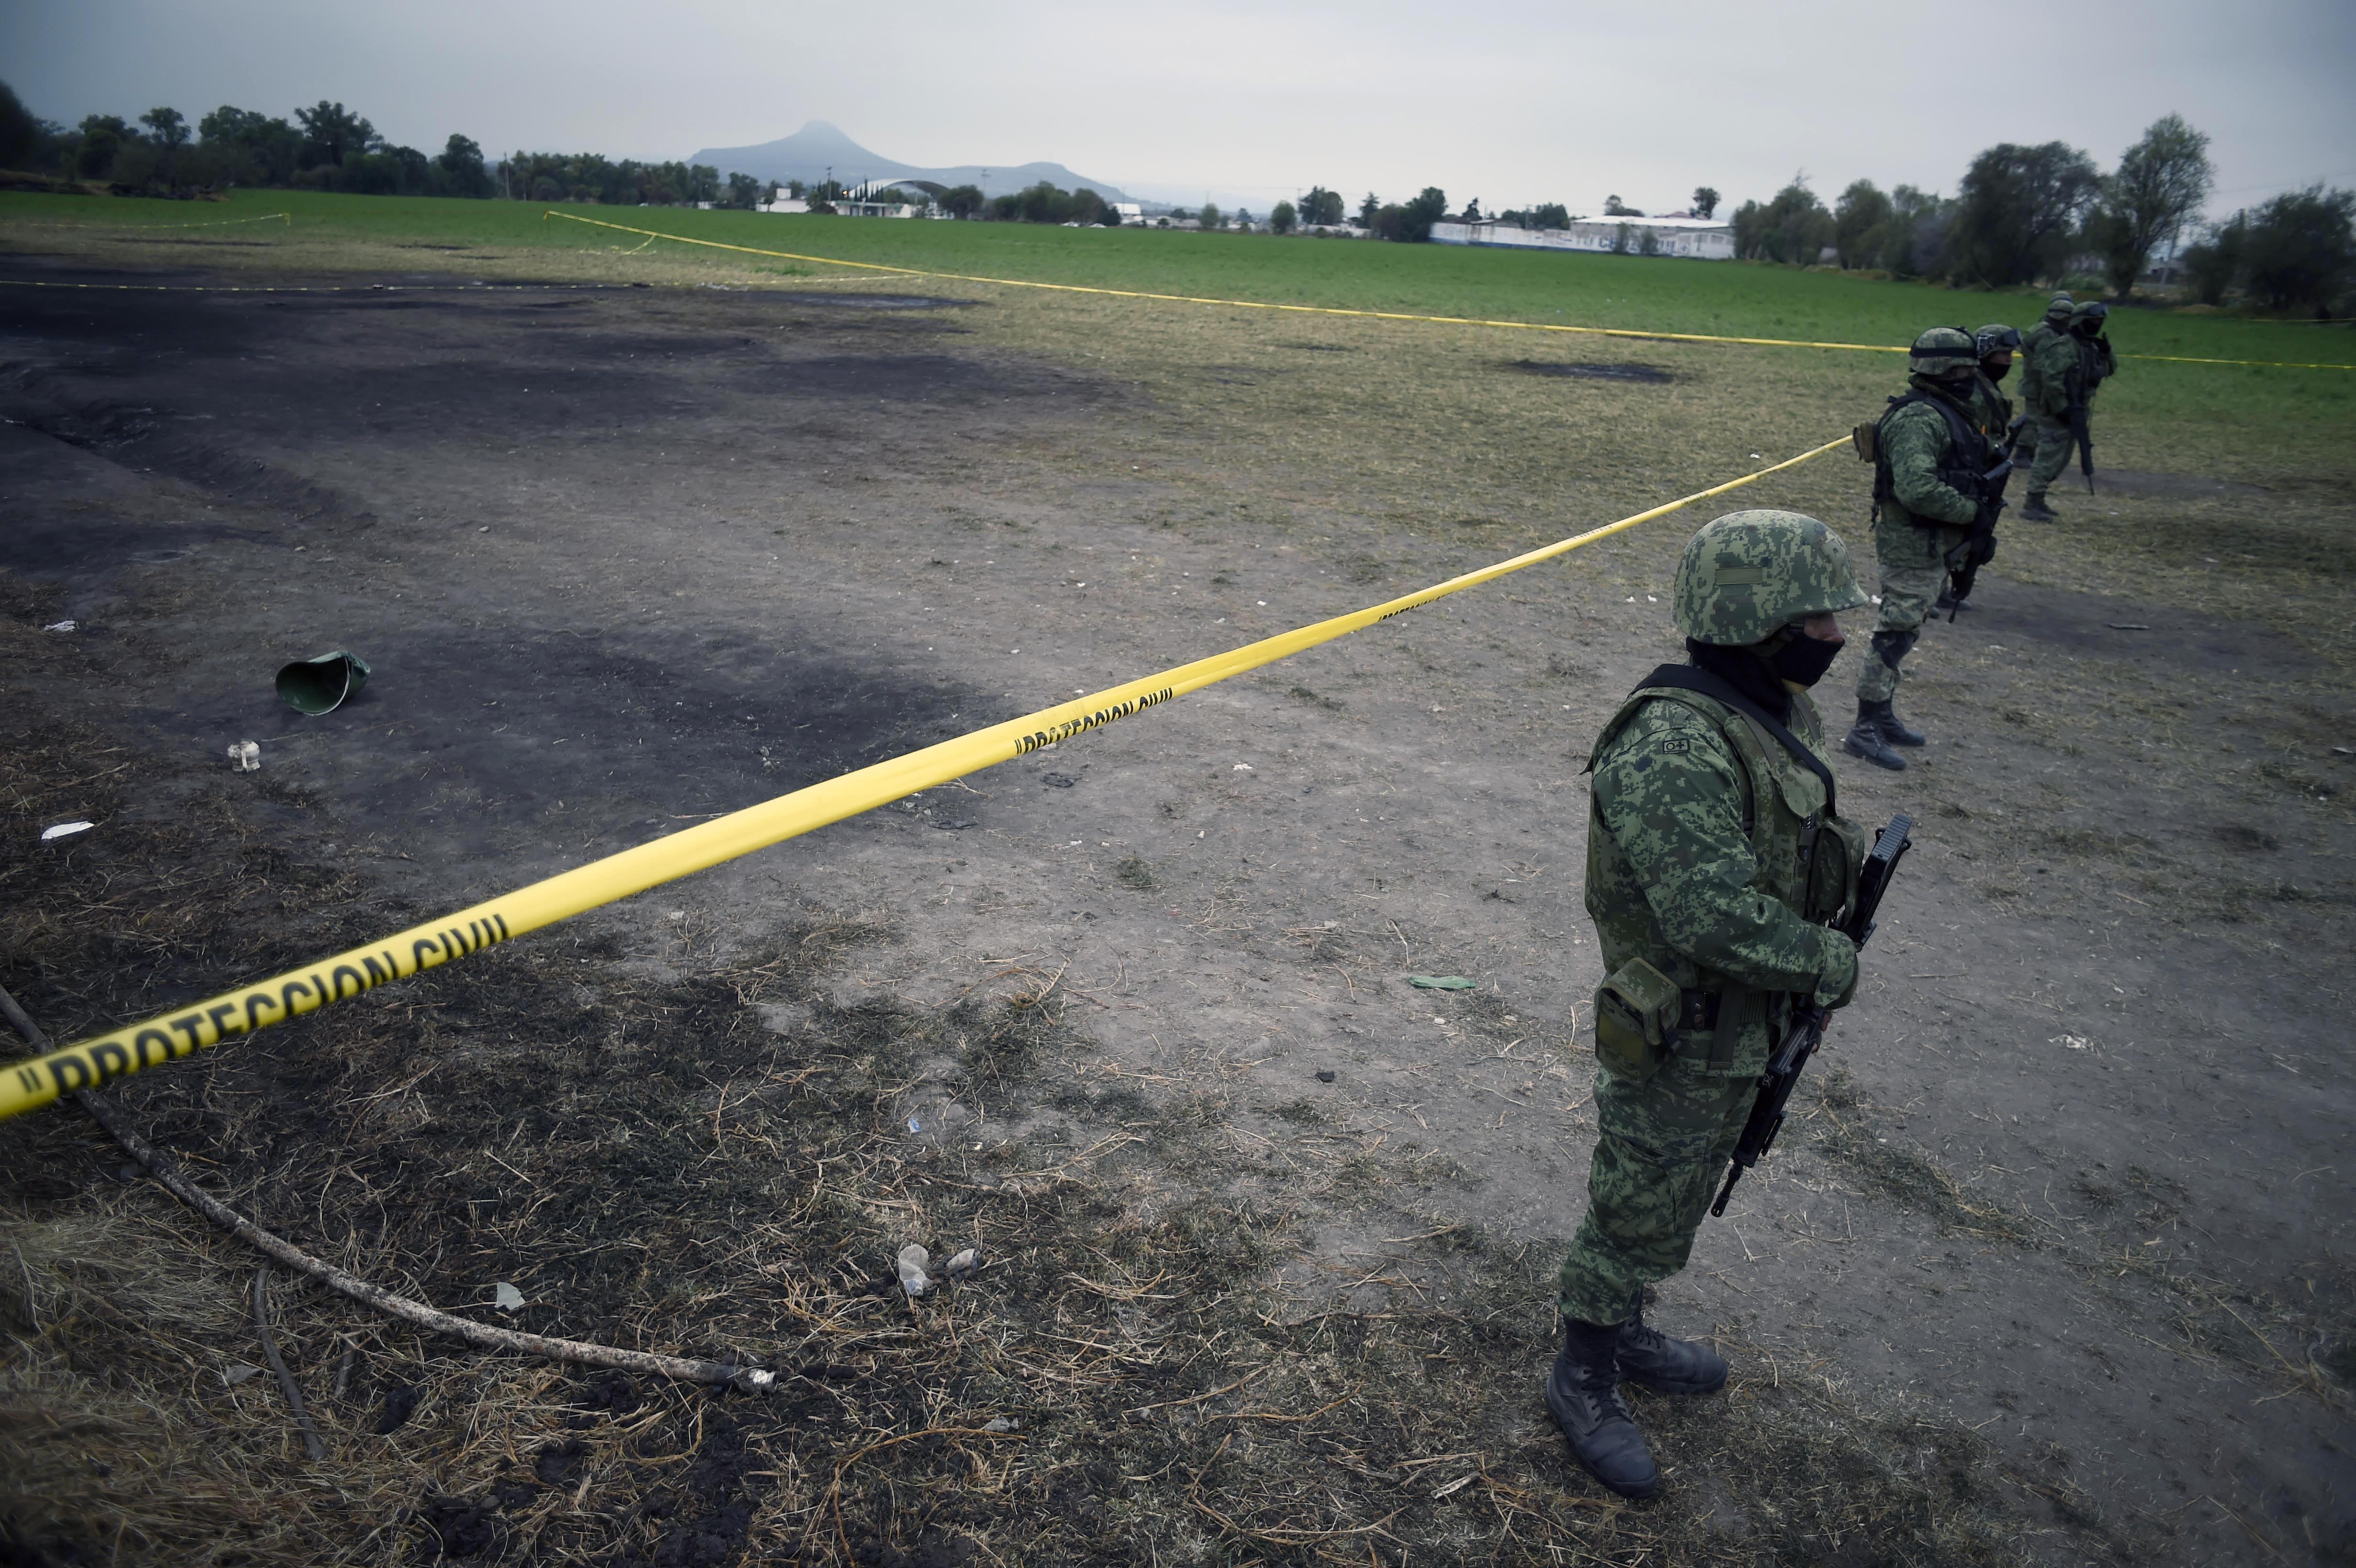 Mexican soldiers stand guard at the site of a massive blaze triggered by a leaky pipeline in Tlahuelilpan, Hidalgo state, Mexico on January 20, 2019. - An explosion and fire in central Mexico killed at least 73 people after hundreds swarmed to the site of an illegal fuel-line tap to gather gasoline amid a government crackdown on fuel theft, officials said. (Photo by ALFREDO ESTRELLA / AFP) (Photo credit should read ALFREDO ESTRELLA/AFP/Getty Images)